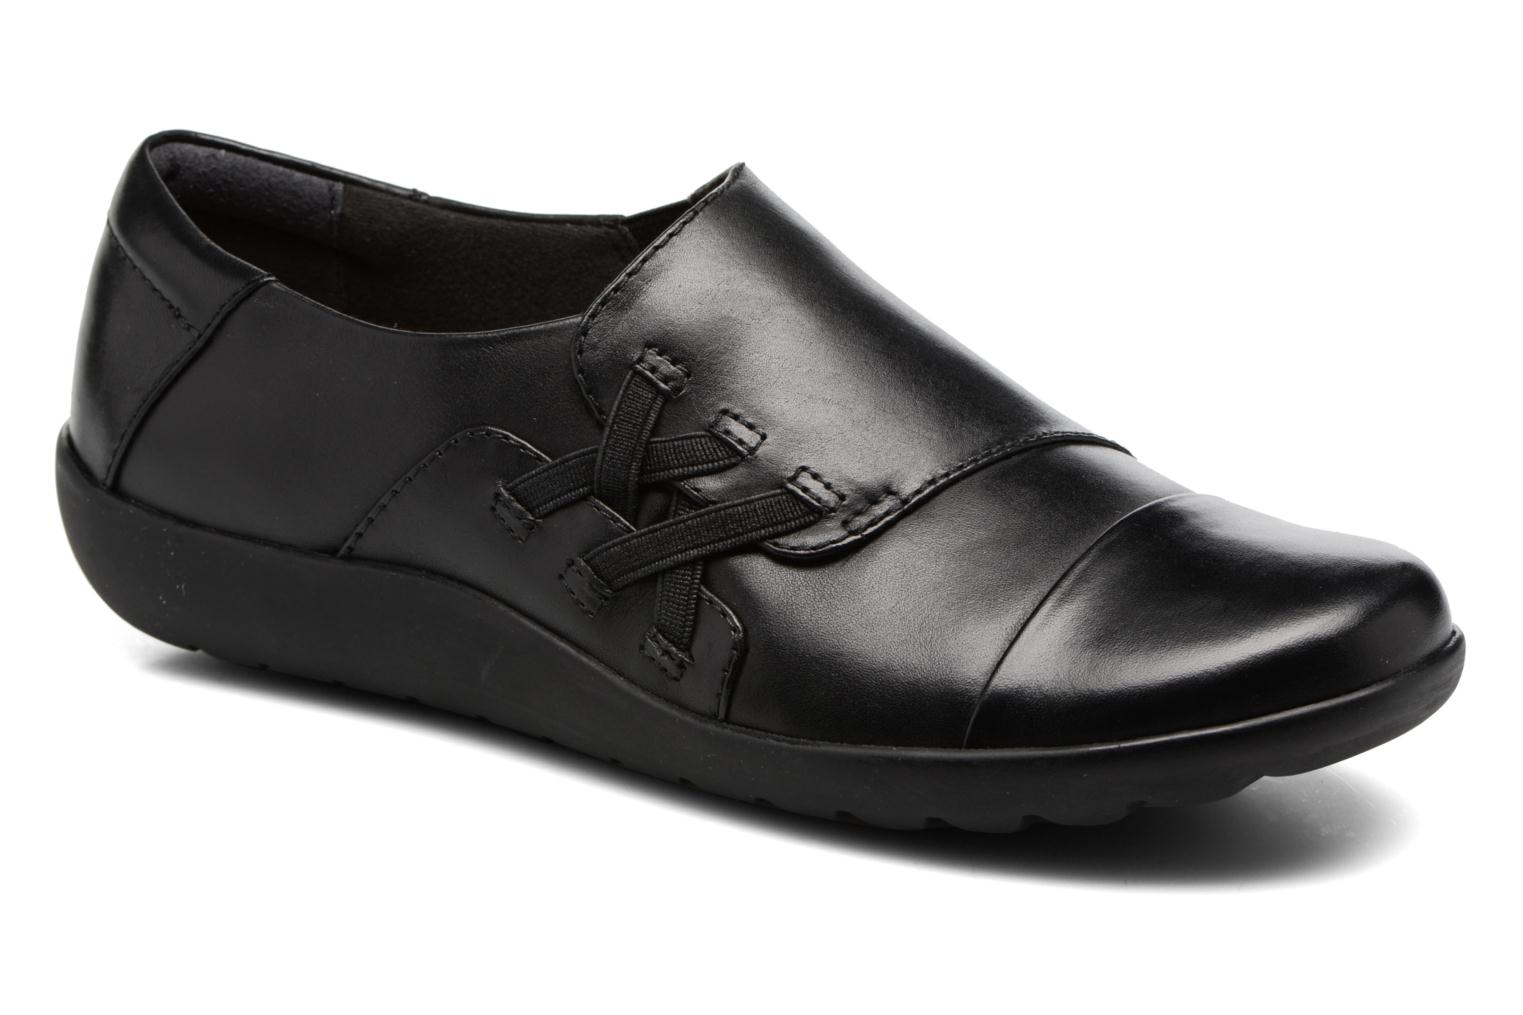 Medora Sandy Black leather